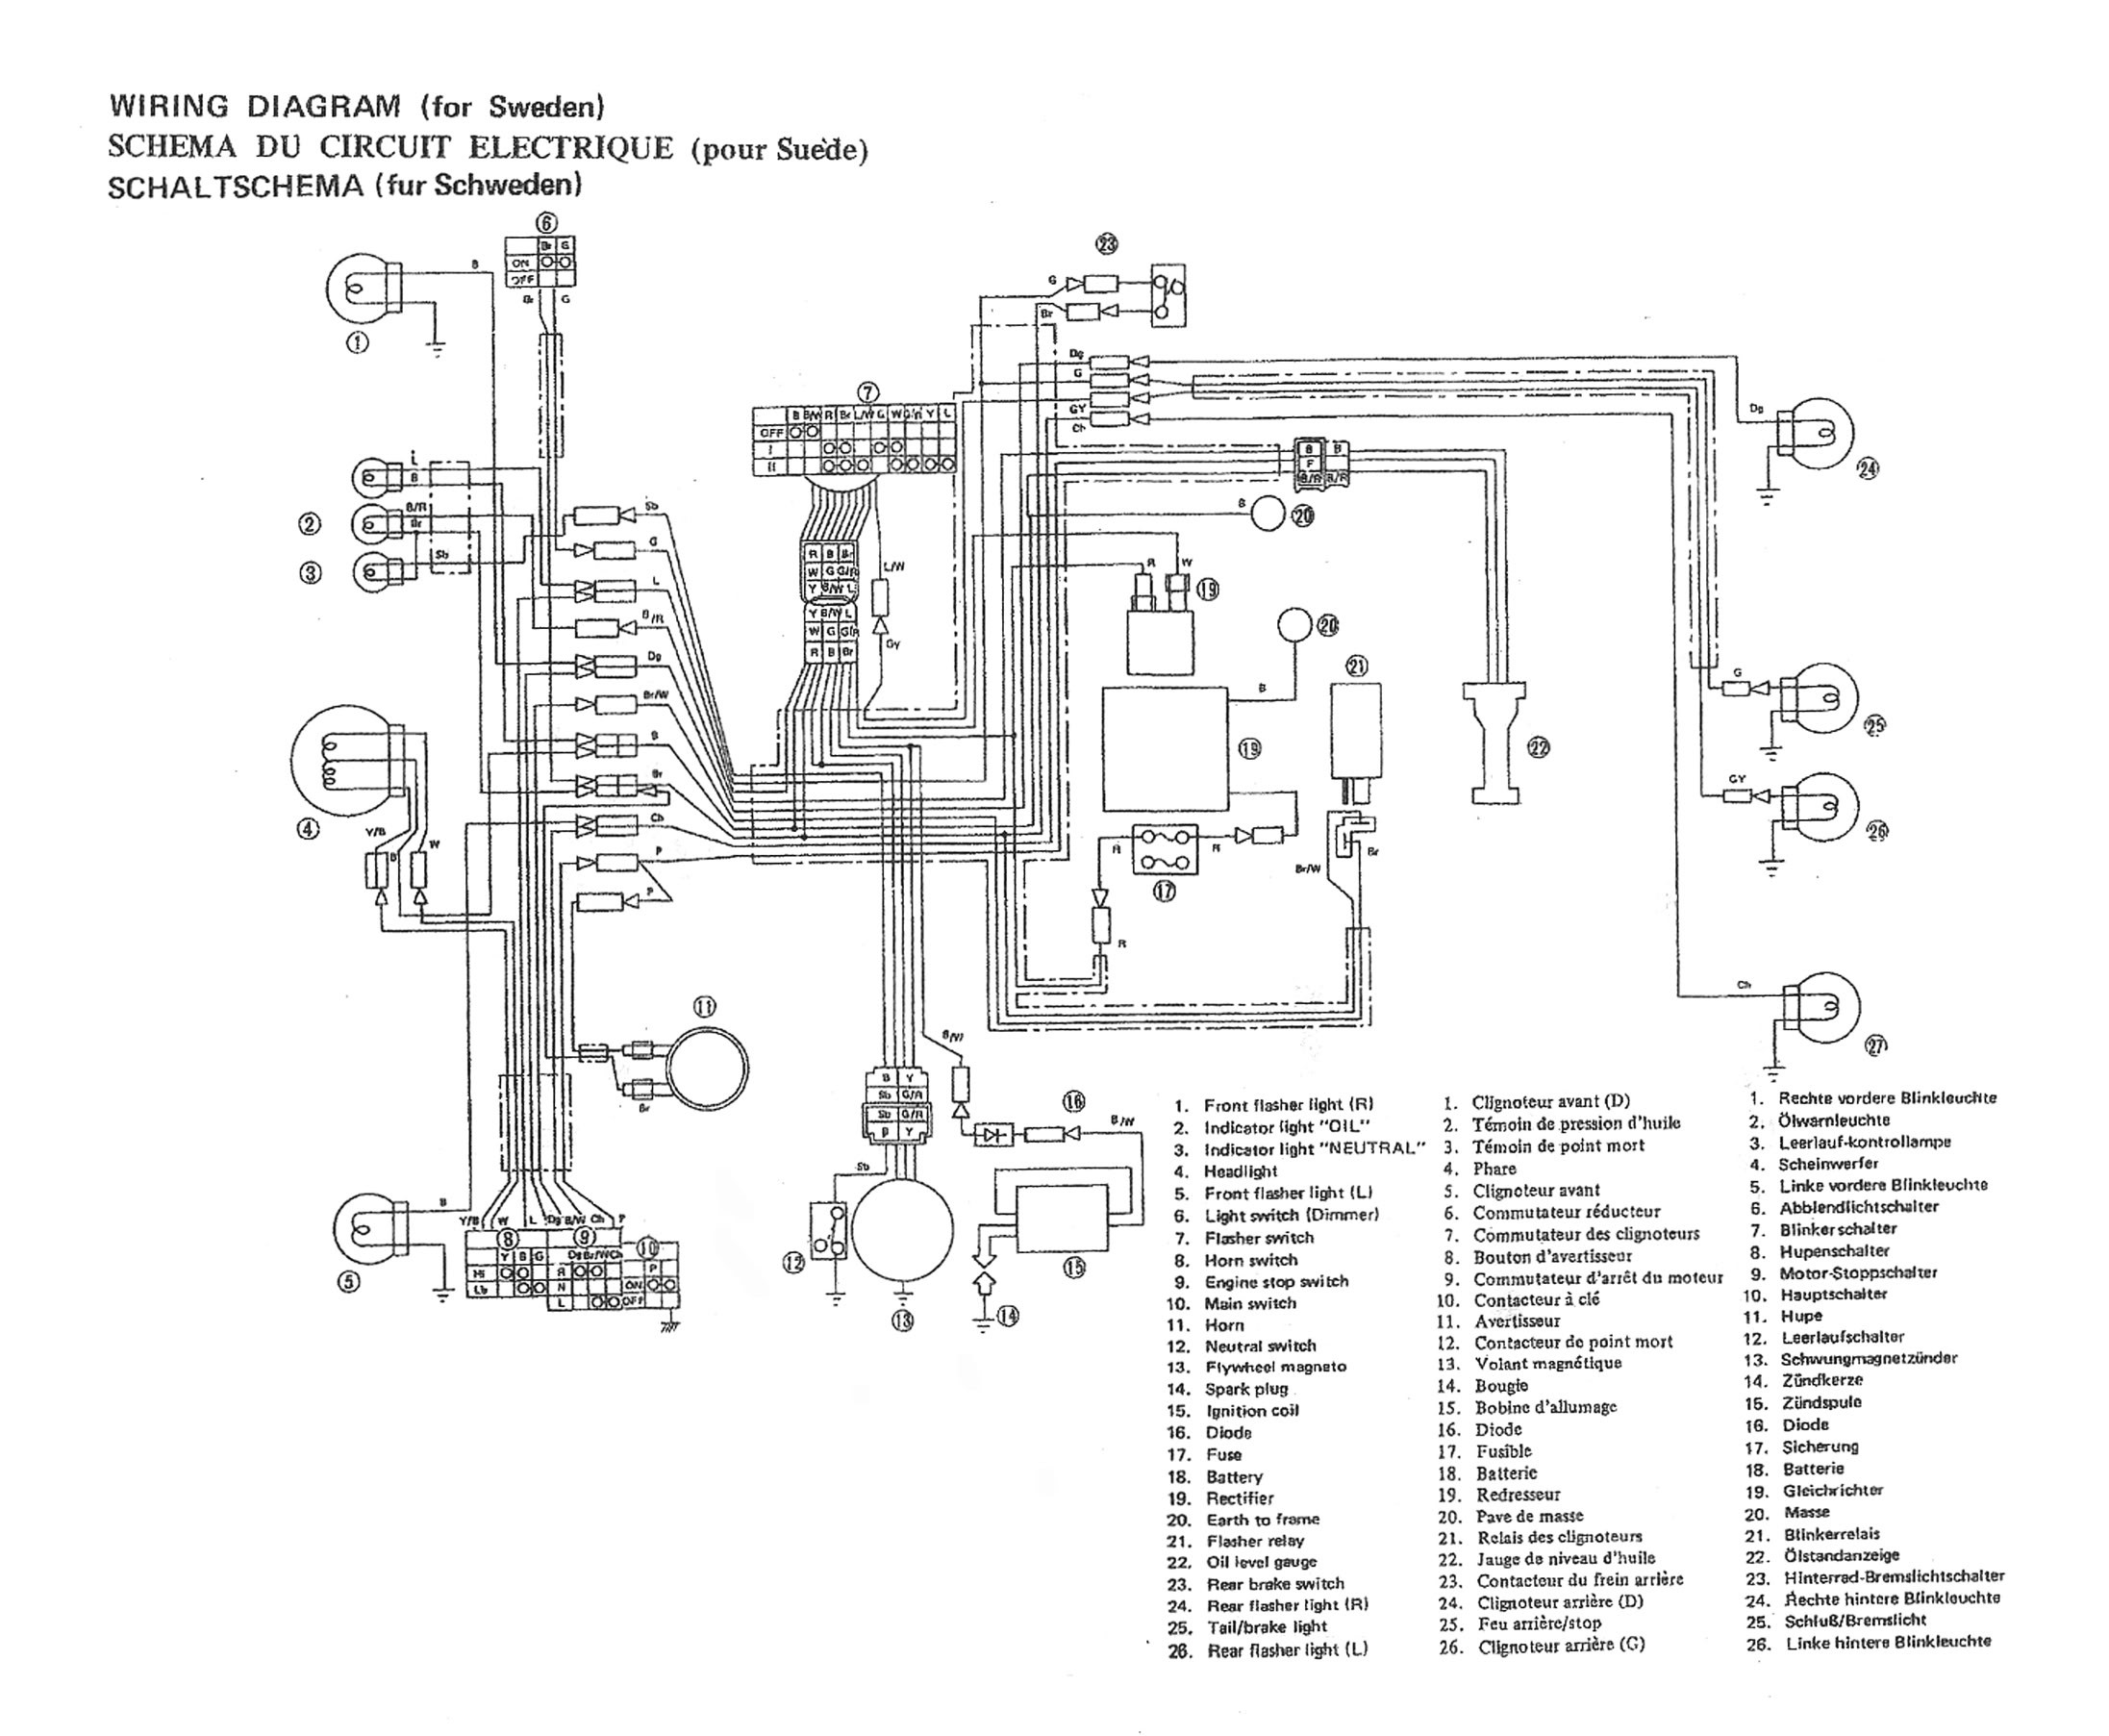 49cc 2 Stroke Scooter Wiring Diagrams Reveolution Of Diagram Cycle Engine Likewise Pocket Bike Rh Detoxicrecenze Com 24v